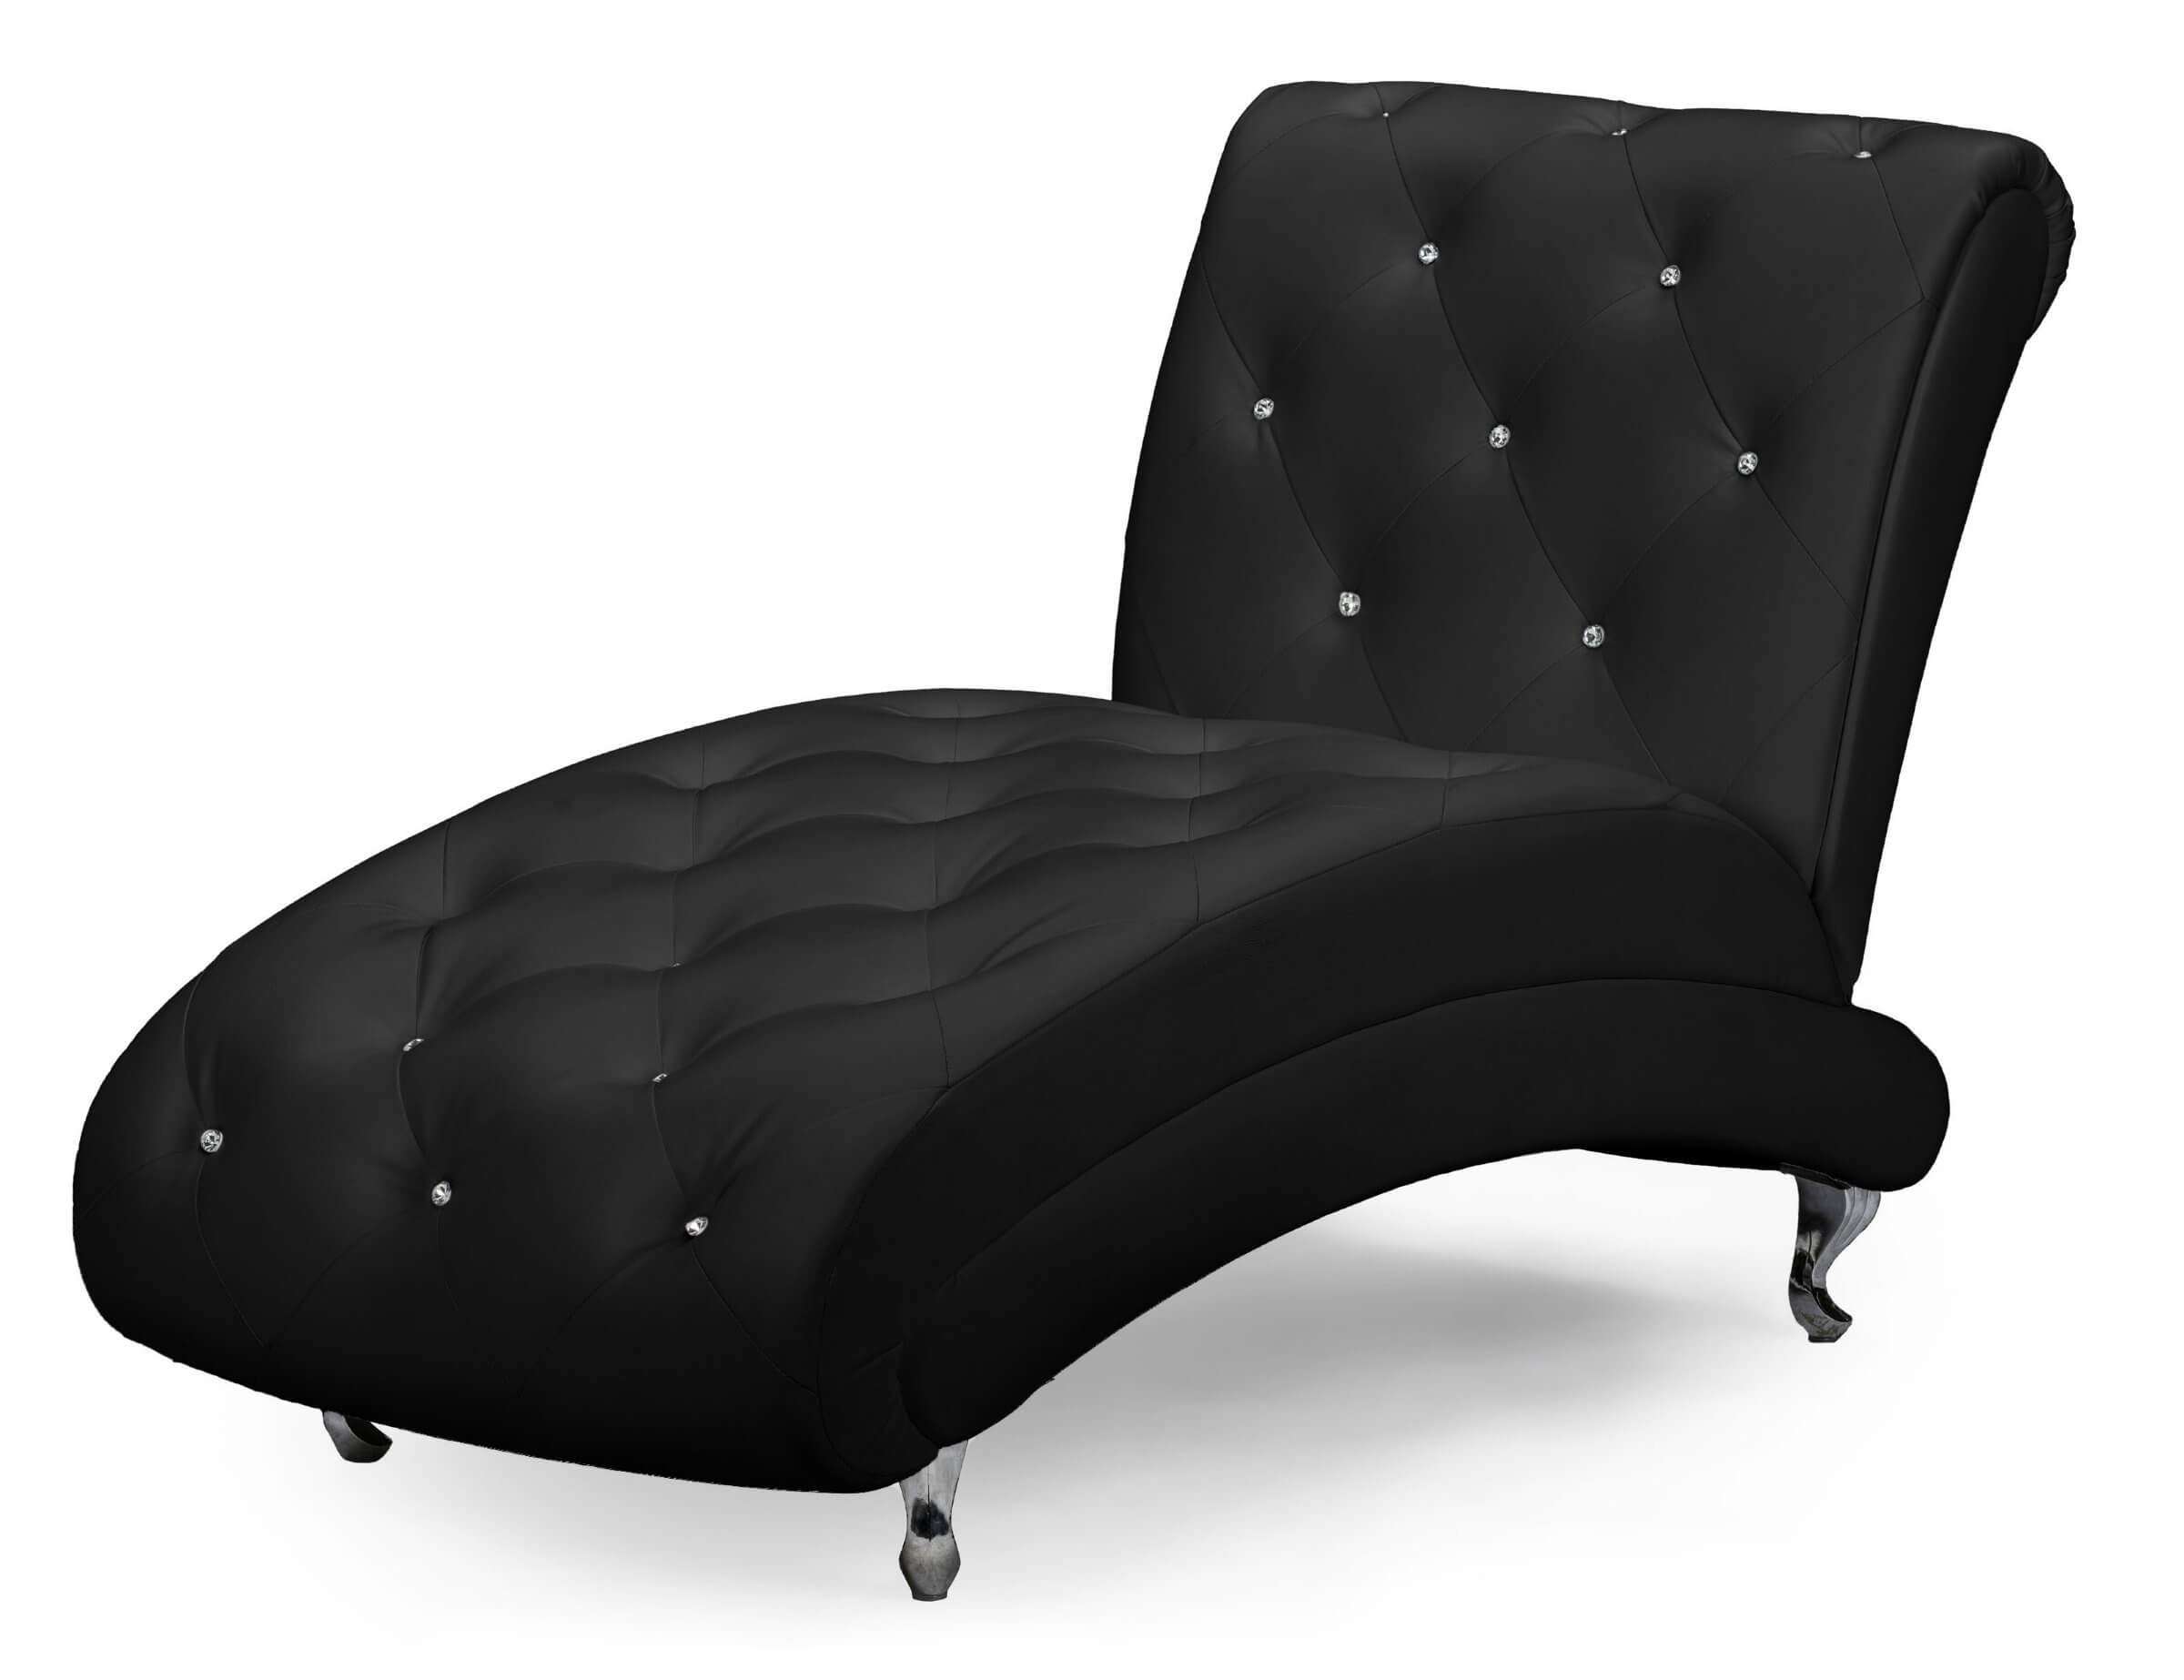 Top 20 types of black chaise lounges buying guide for Best chaise lounges